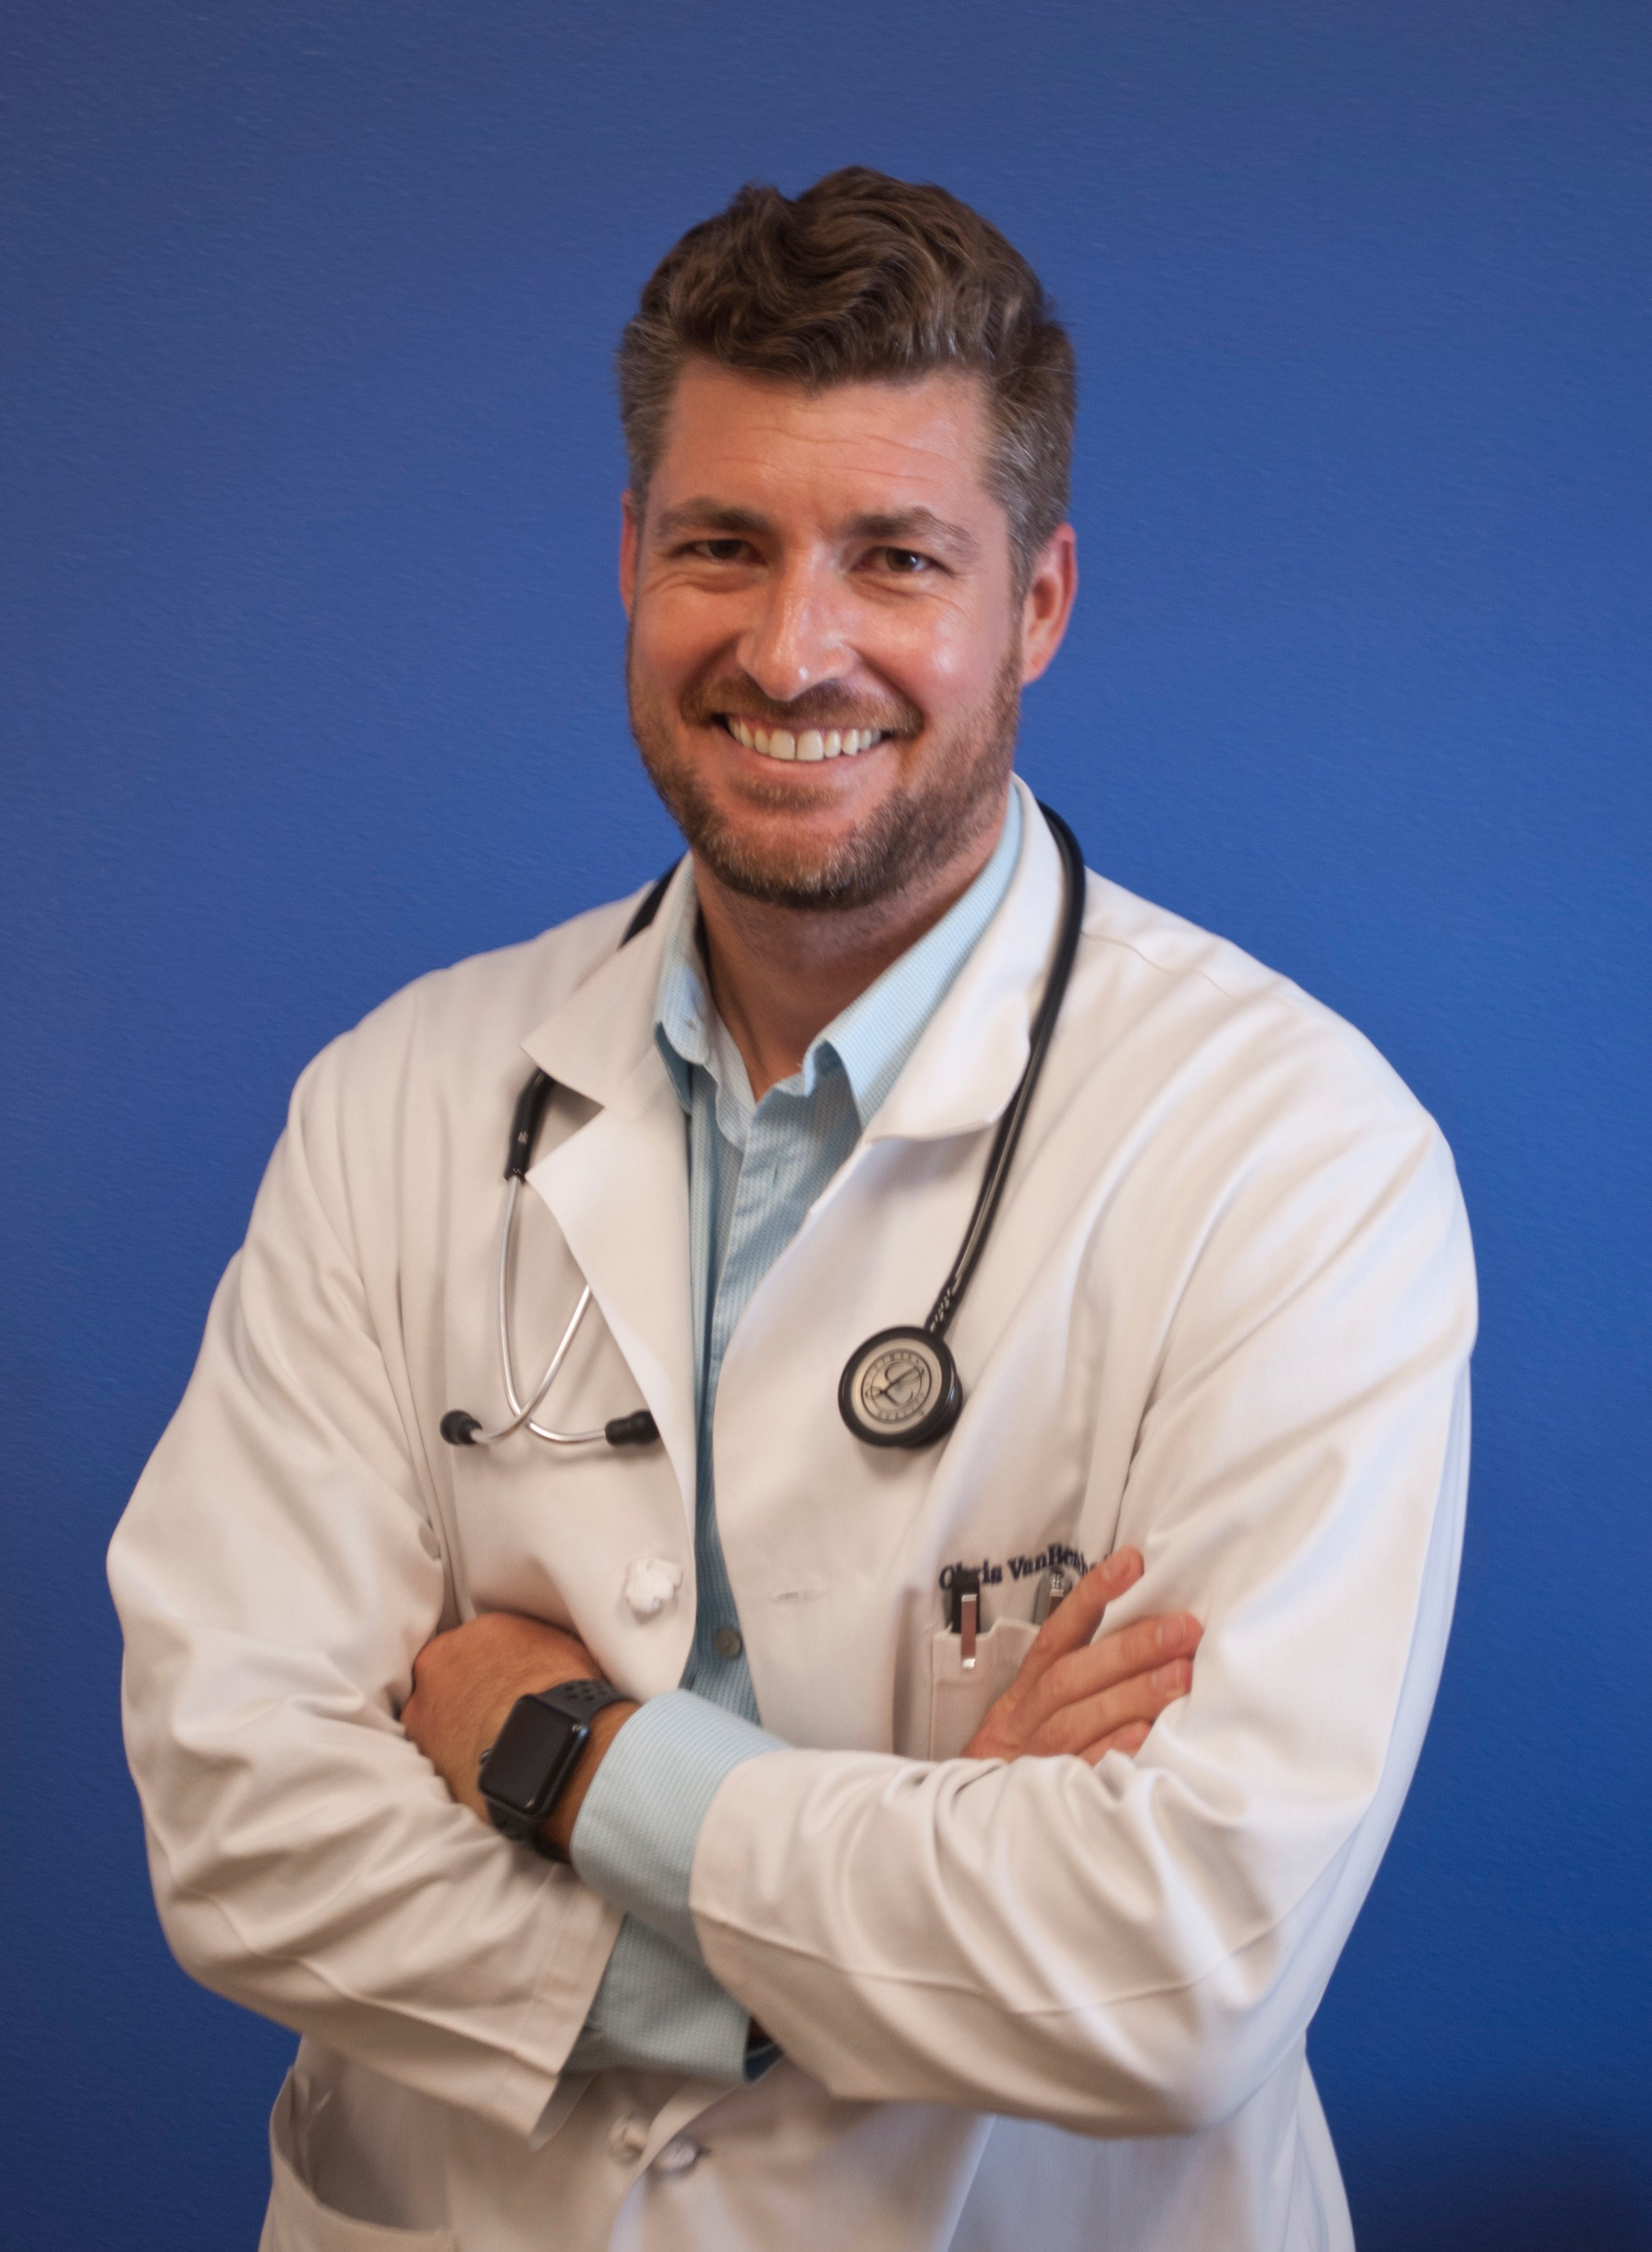 Christopher L. Van Benschoten, MD